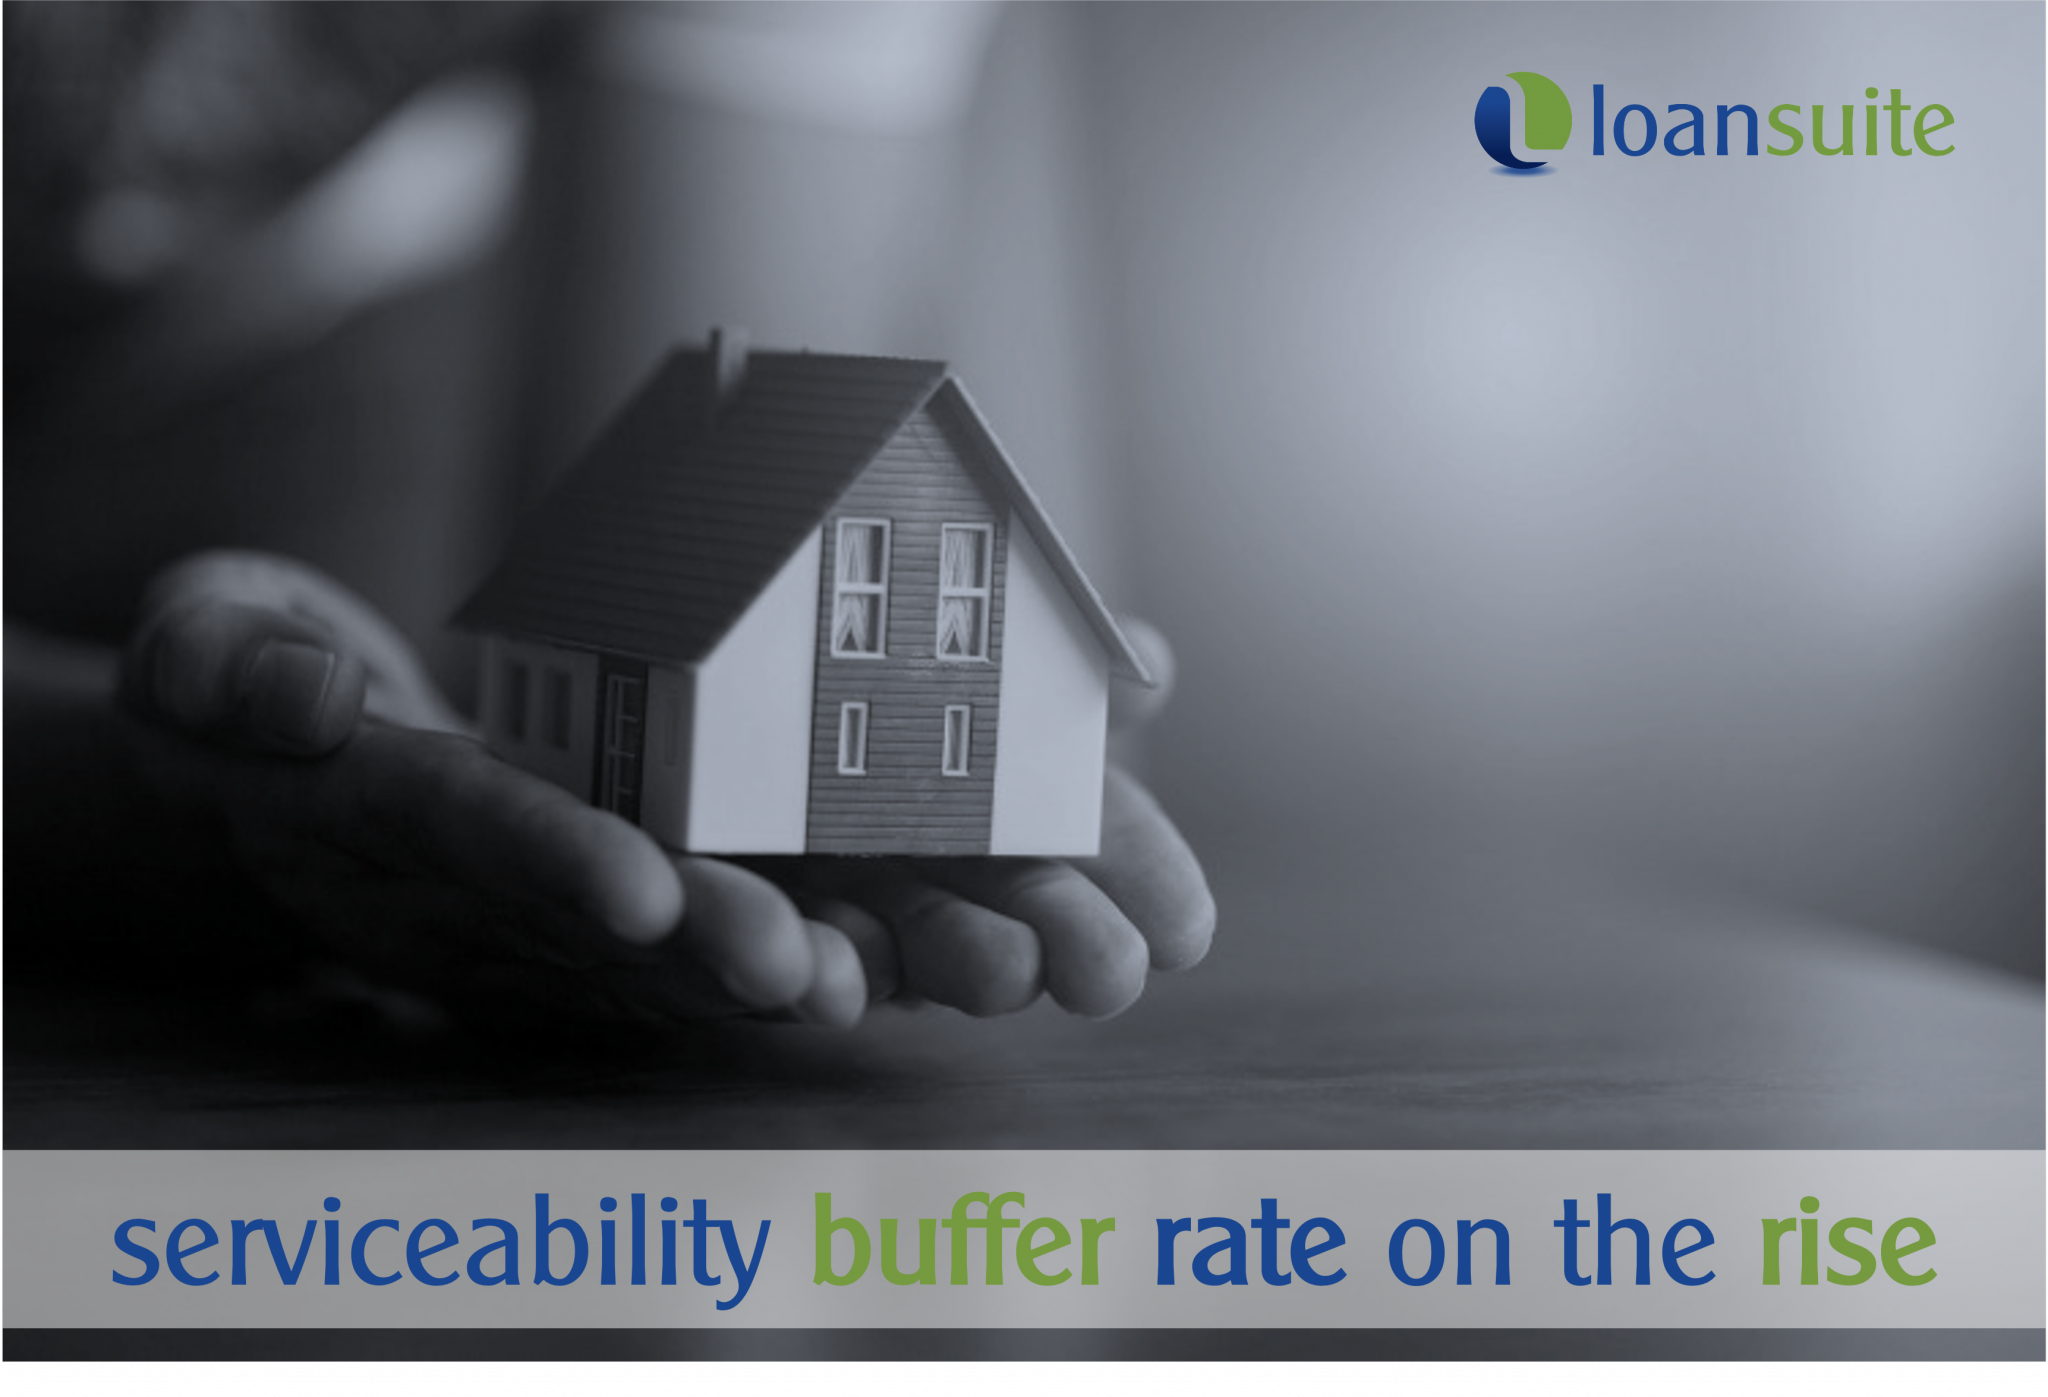 Serviceability Rate Buffers Are On The Rise - Loansuite - Australian Expat Mortgage Brokers